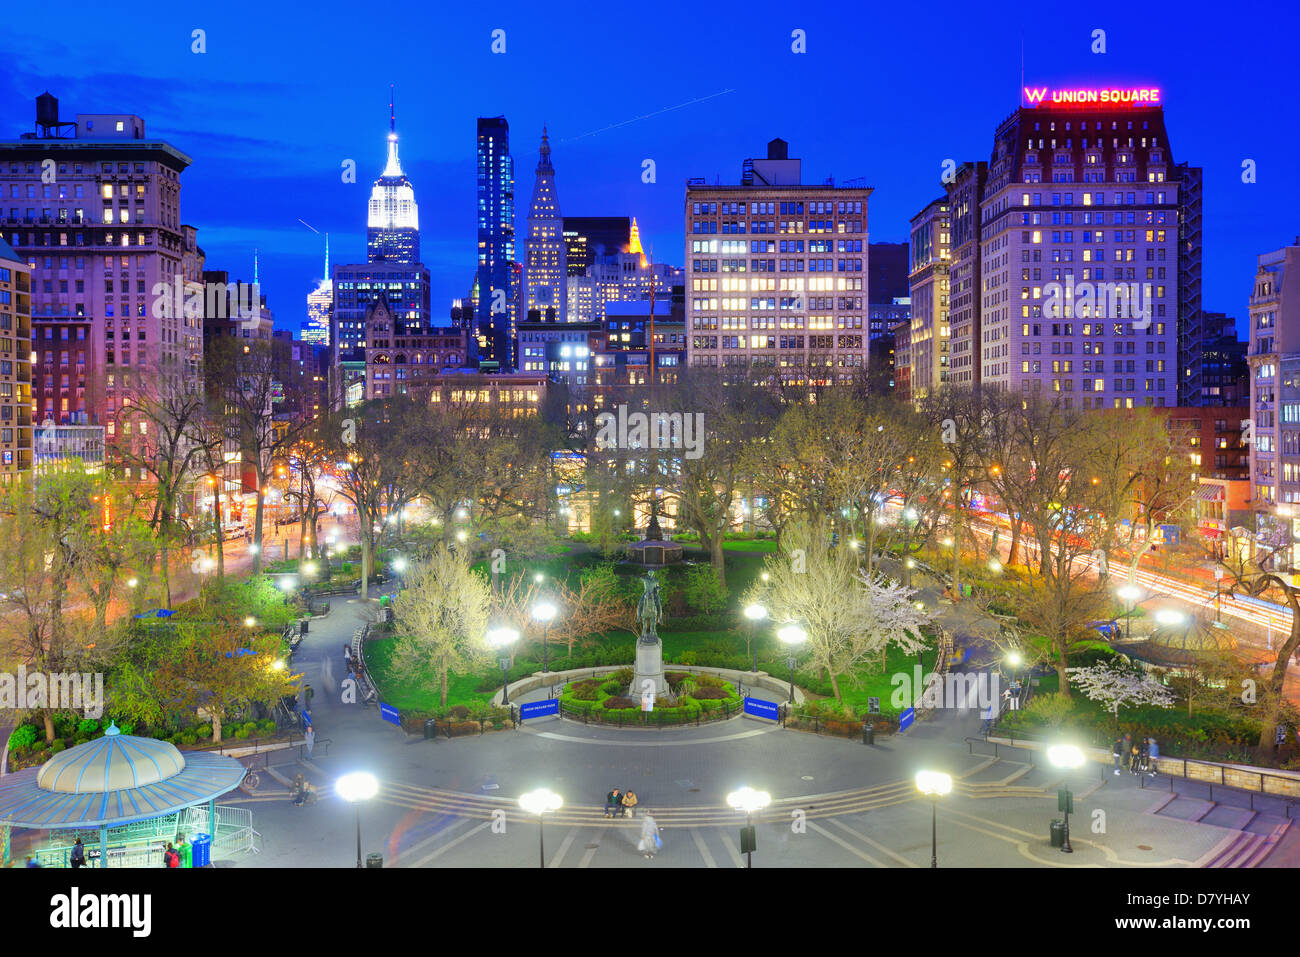 Union Square in New York City - Stock Image